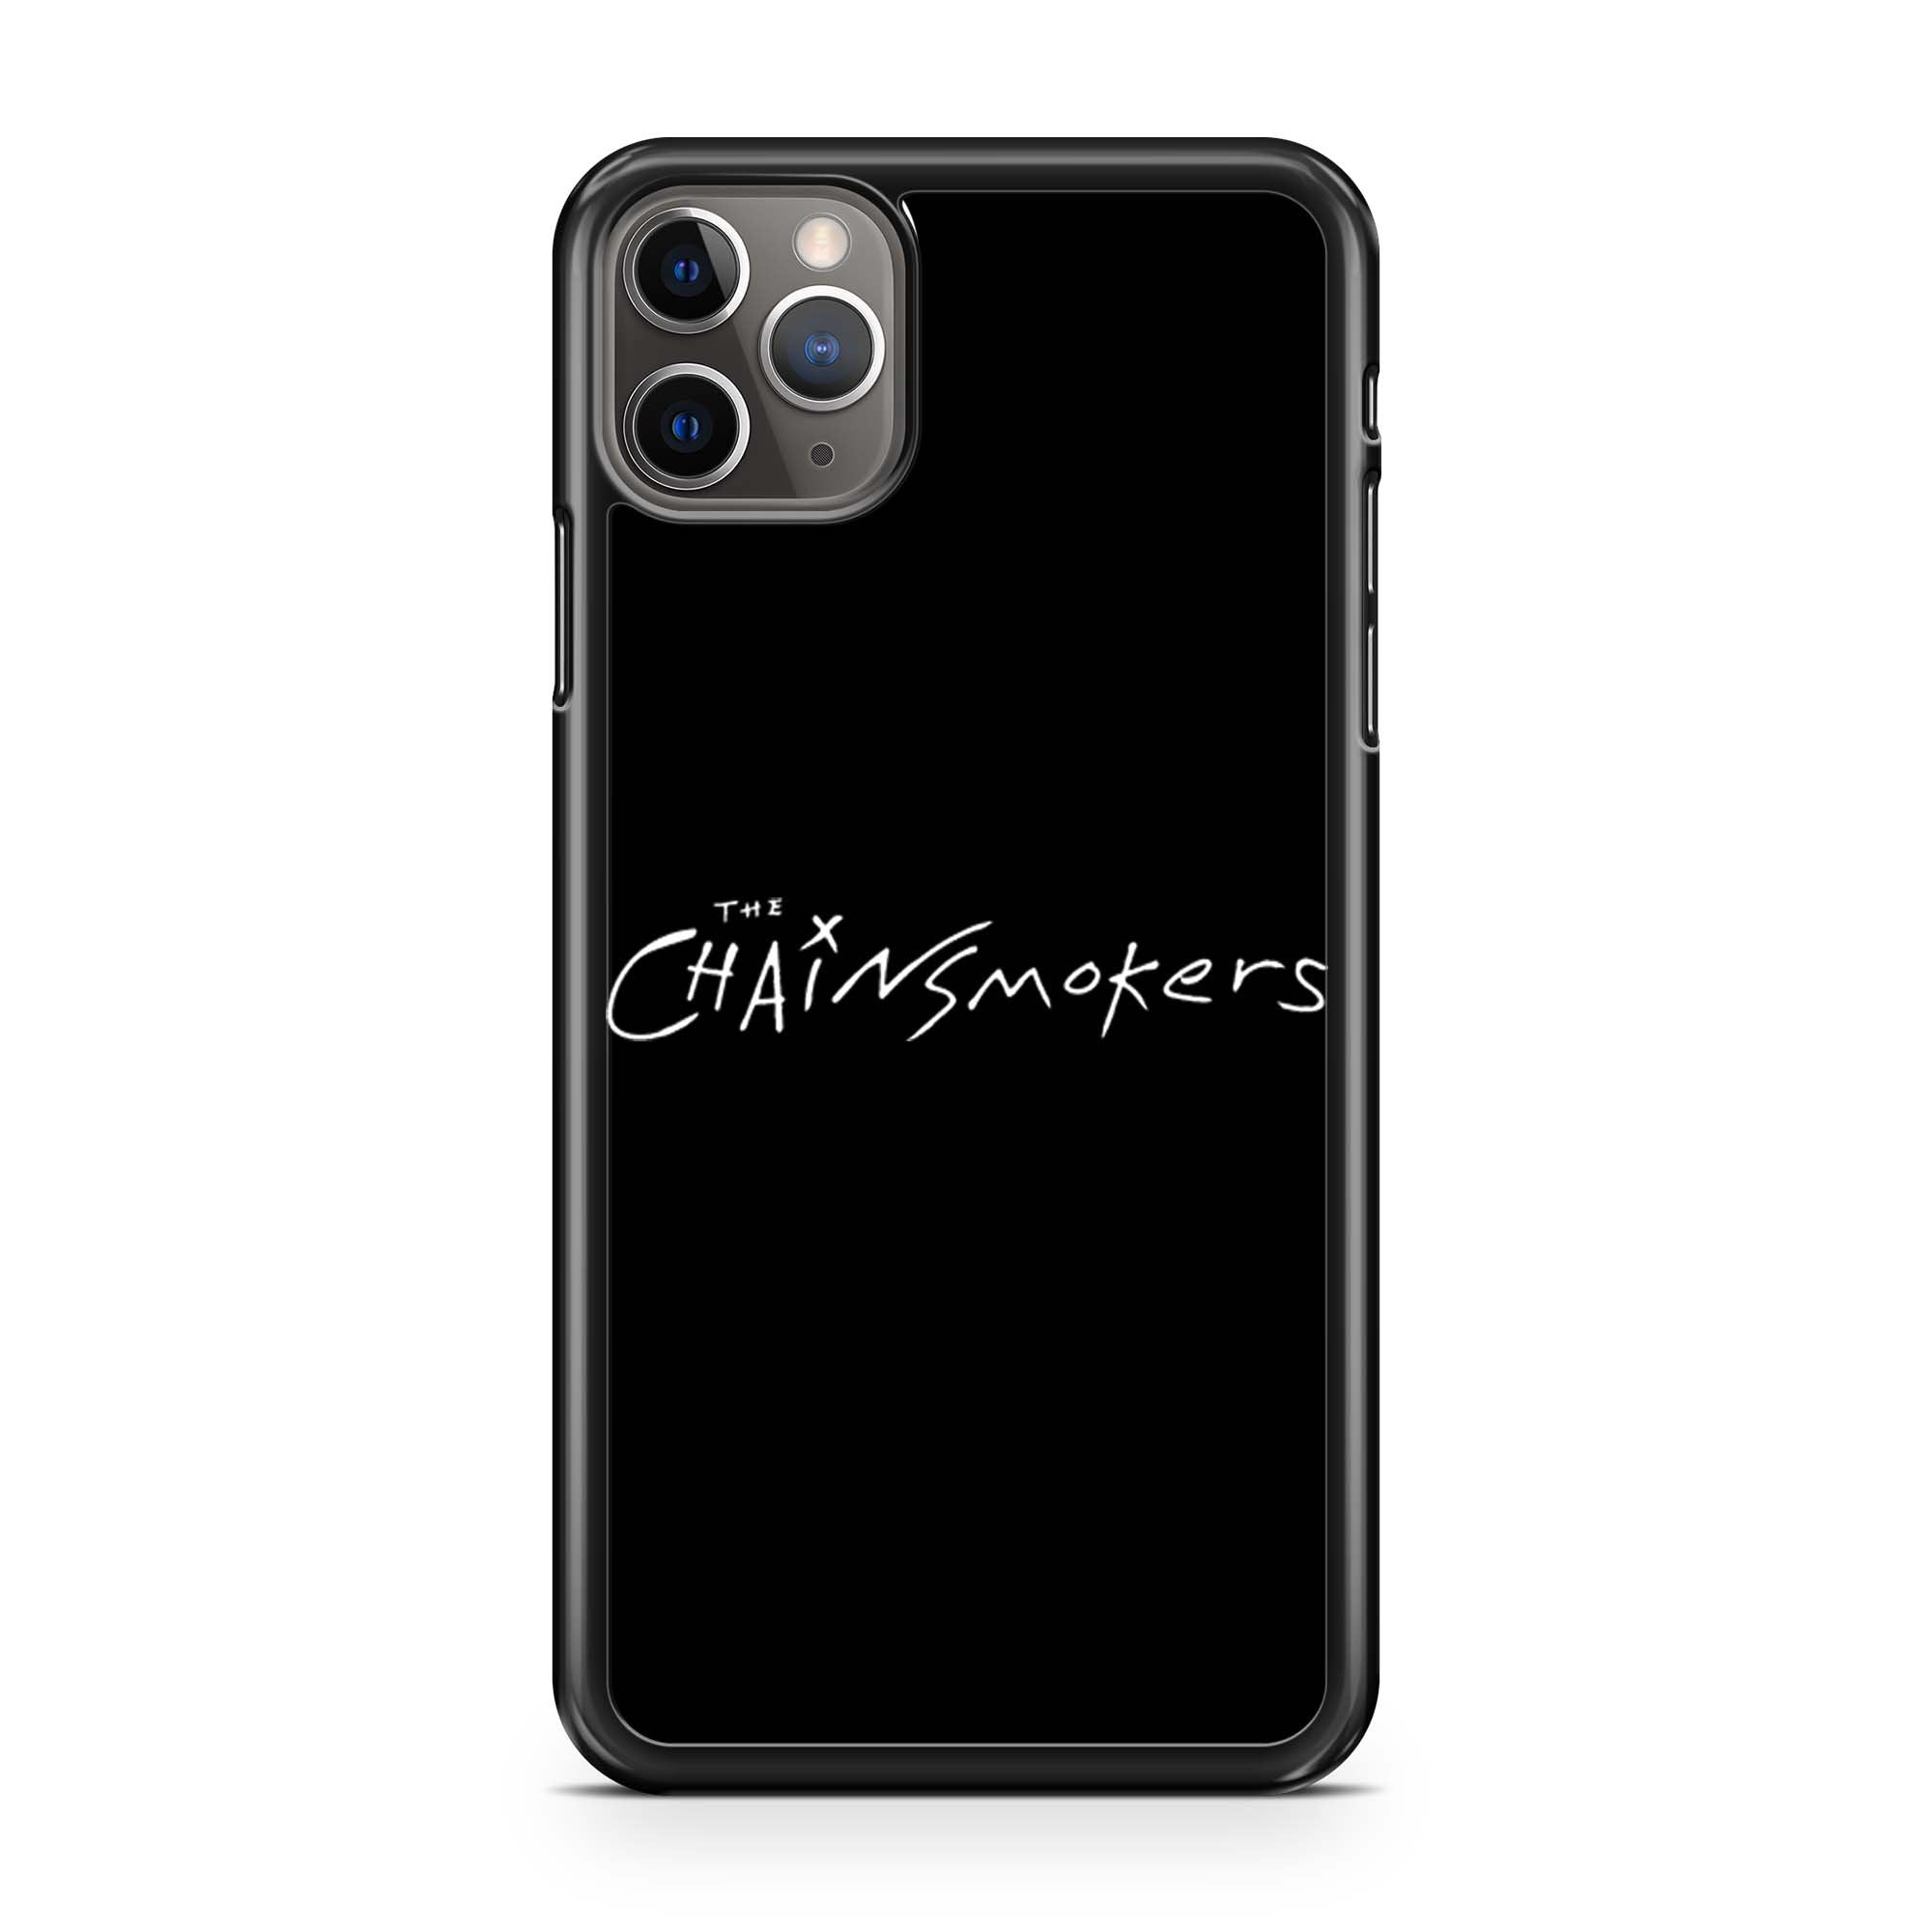 The Chainsmokers Logo iPhone 11 Pro Max Case